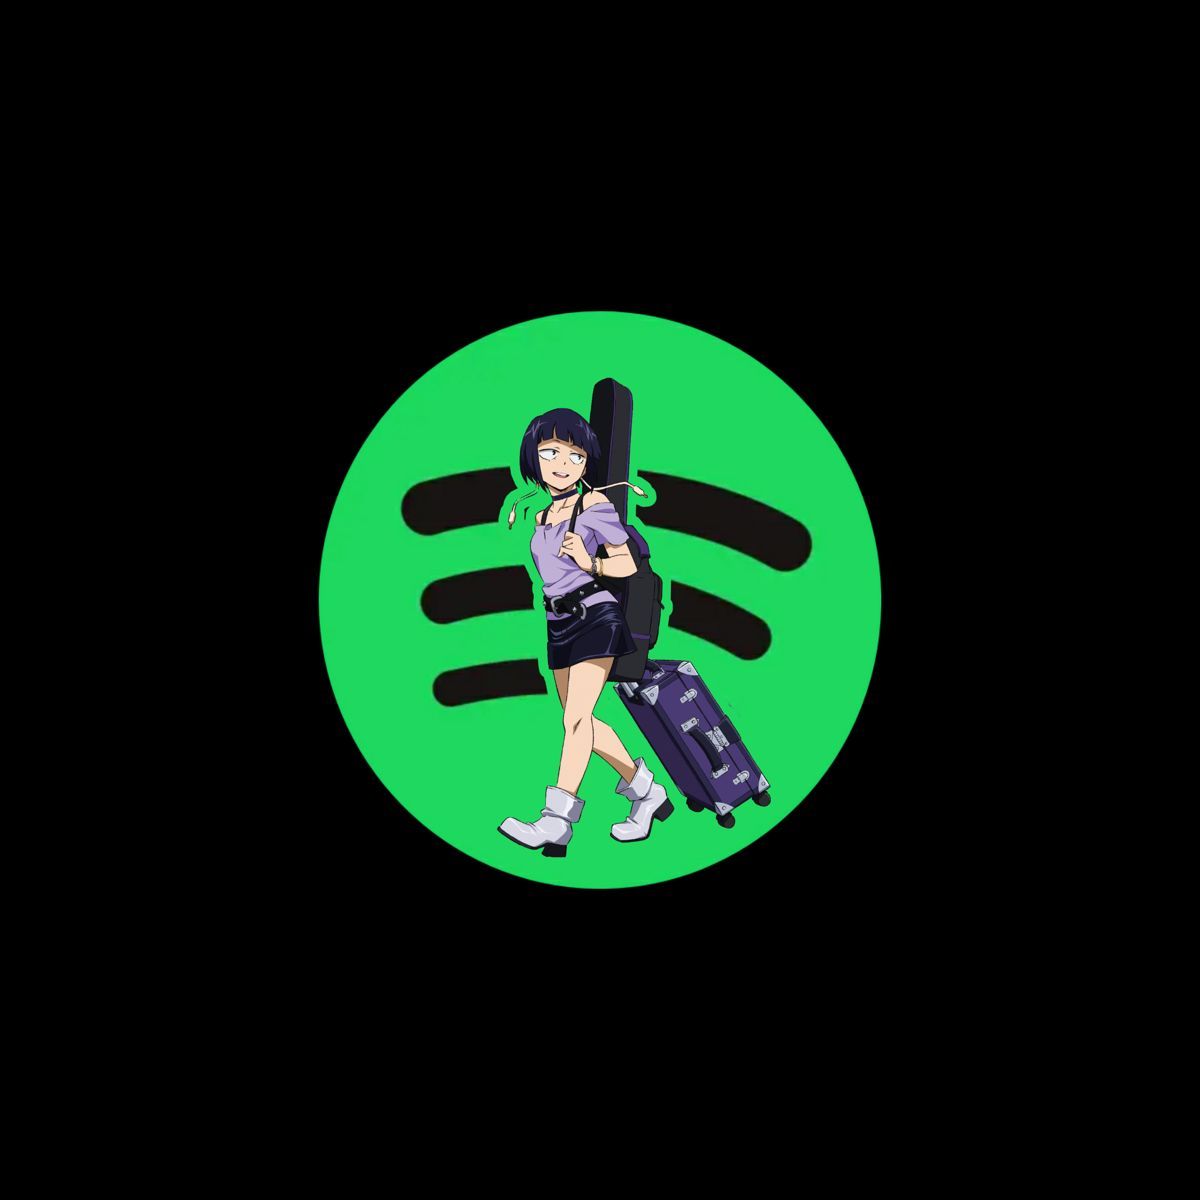 Spotify Anime Icon In 2020 Animated Icons App Anime App Icon